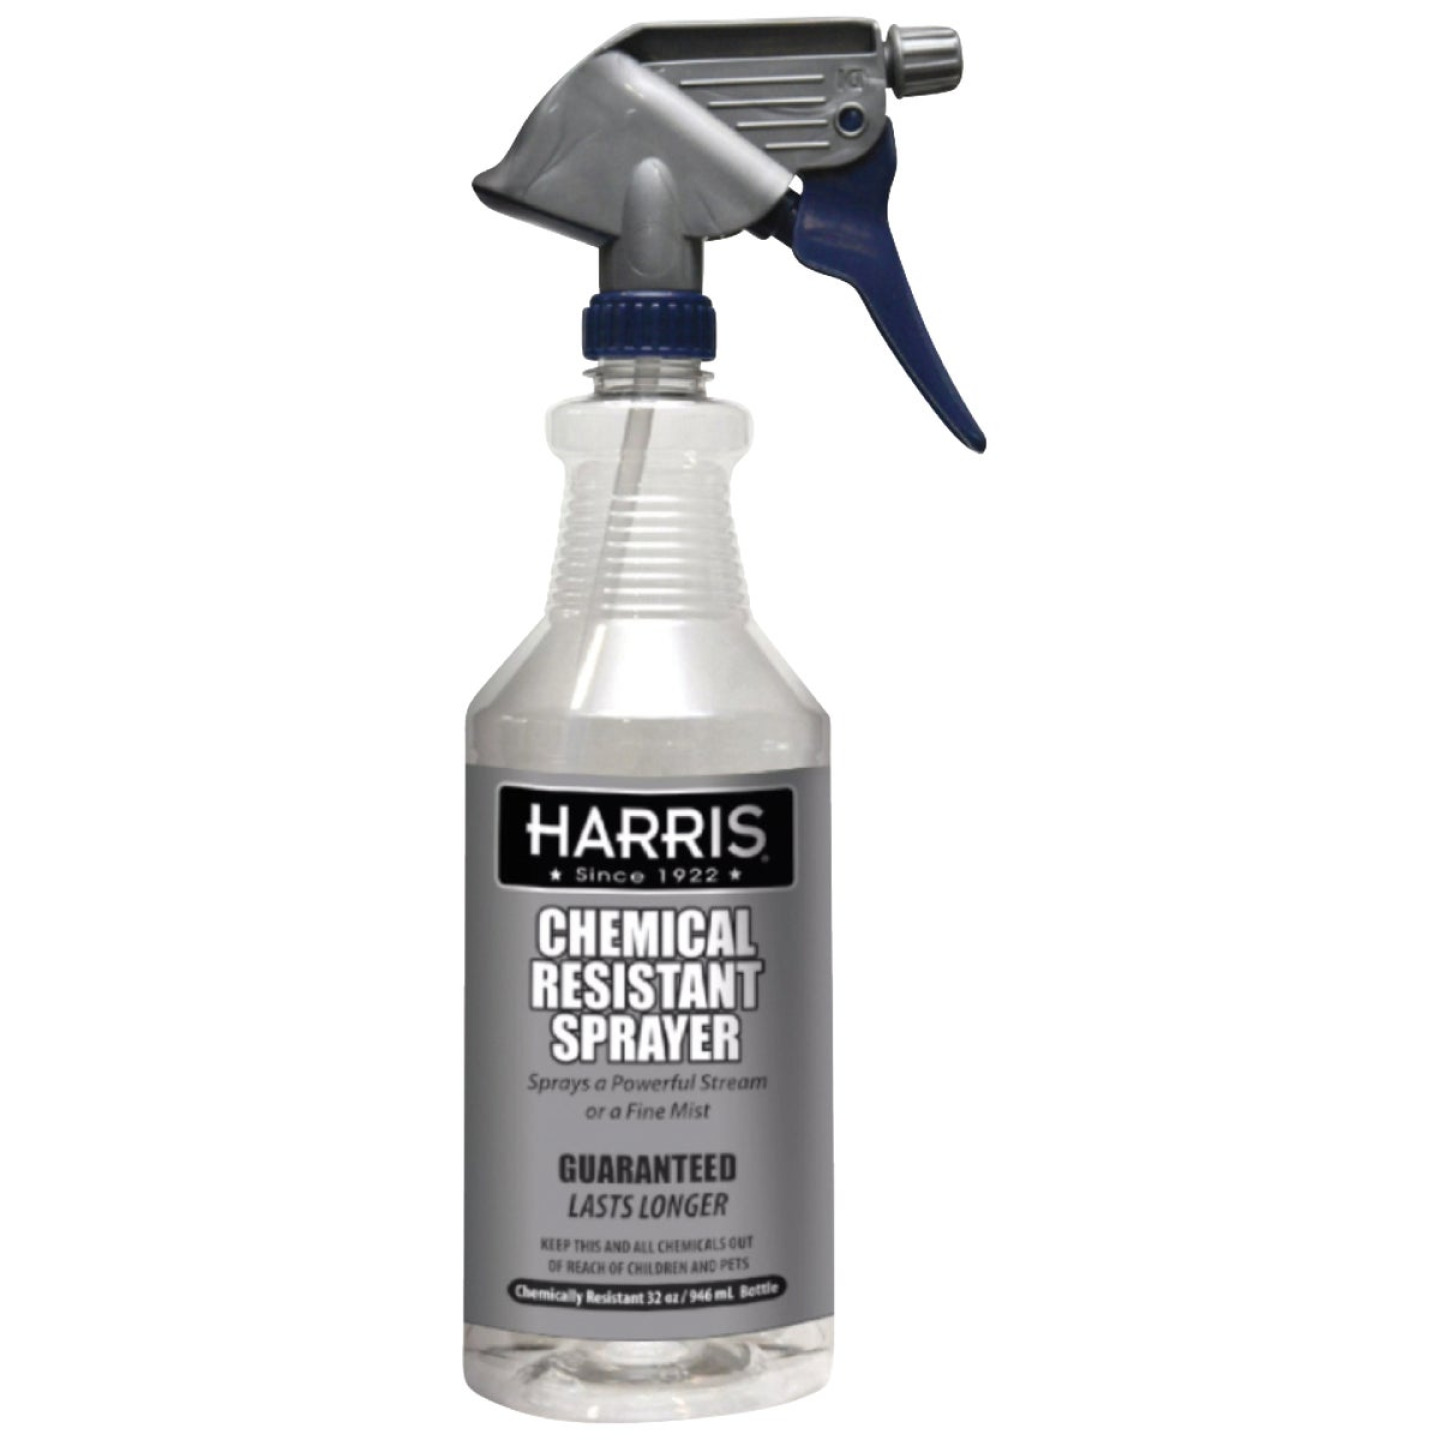 Harris 32 Oz. Chemical Resistant Spray Bottle Image 1